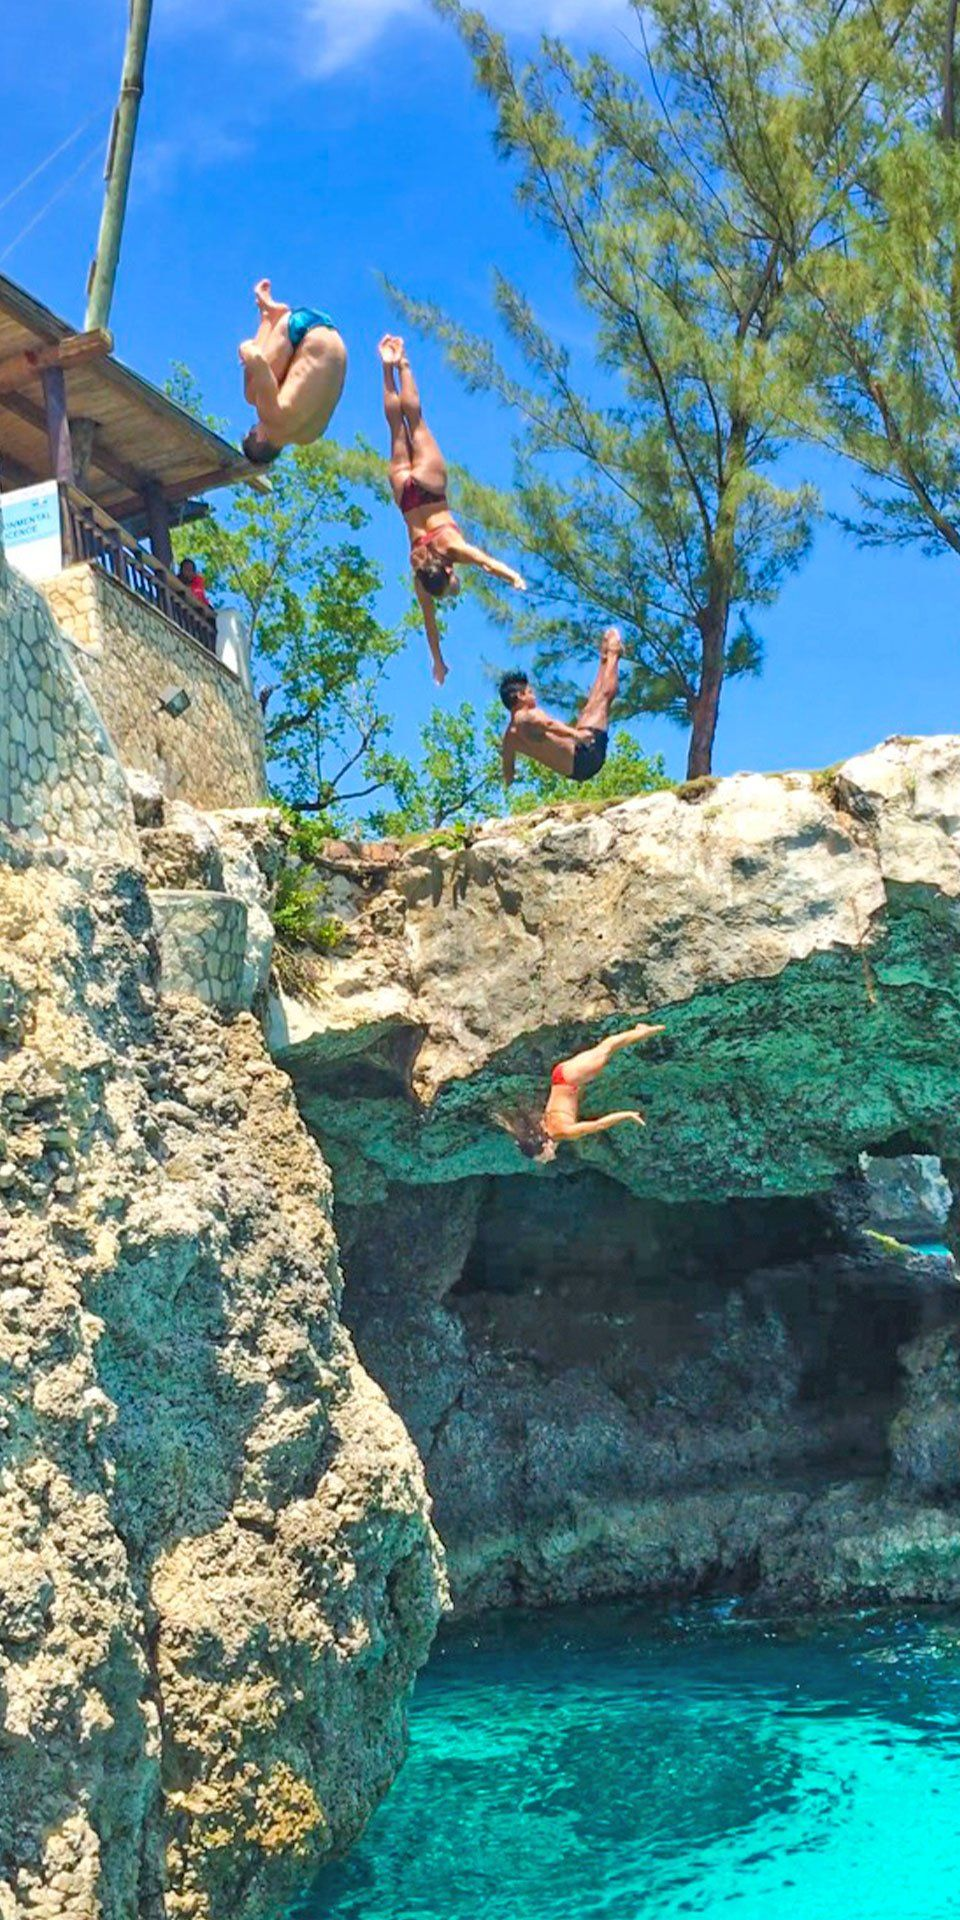 montego bay jamaica what would you do with 8 hours in jamaica rh pinterest com